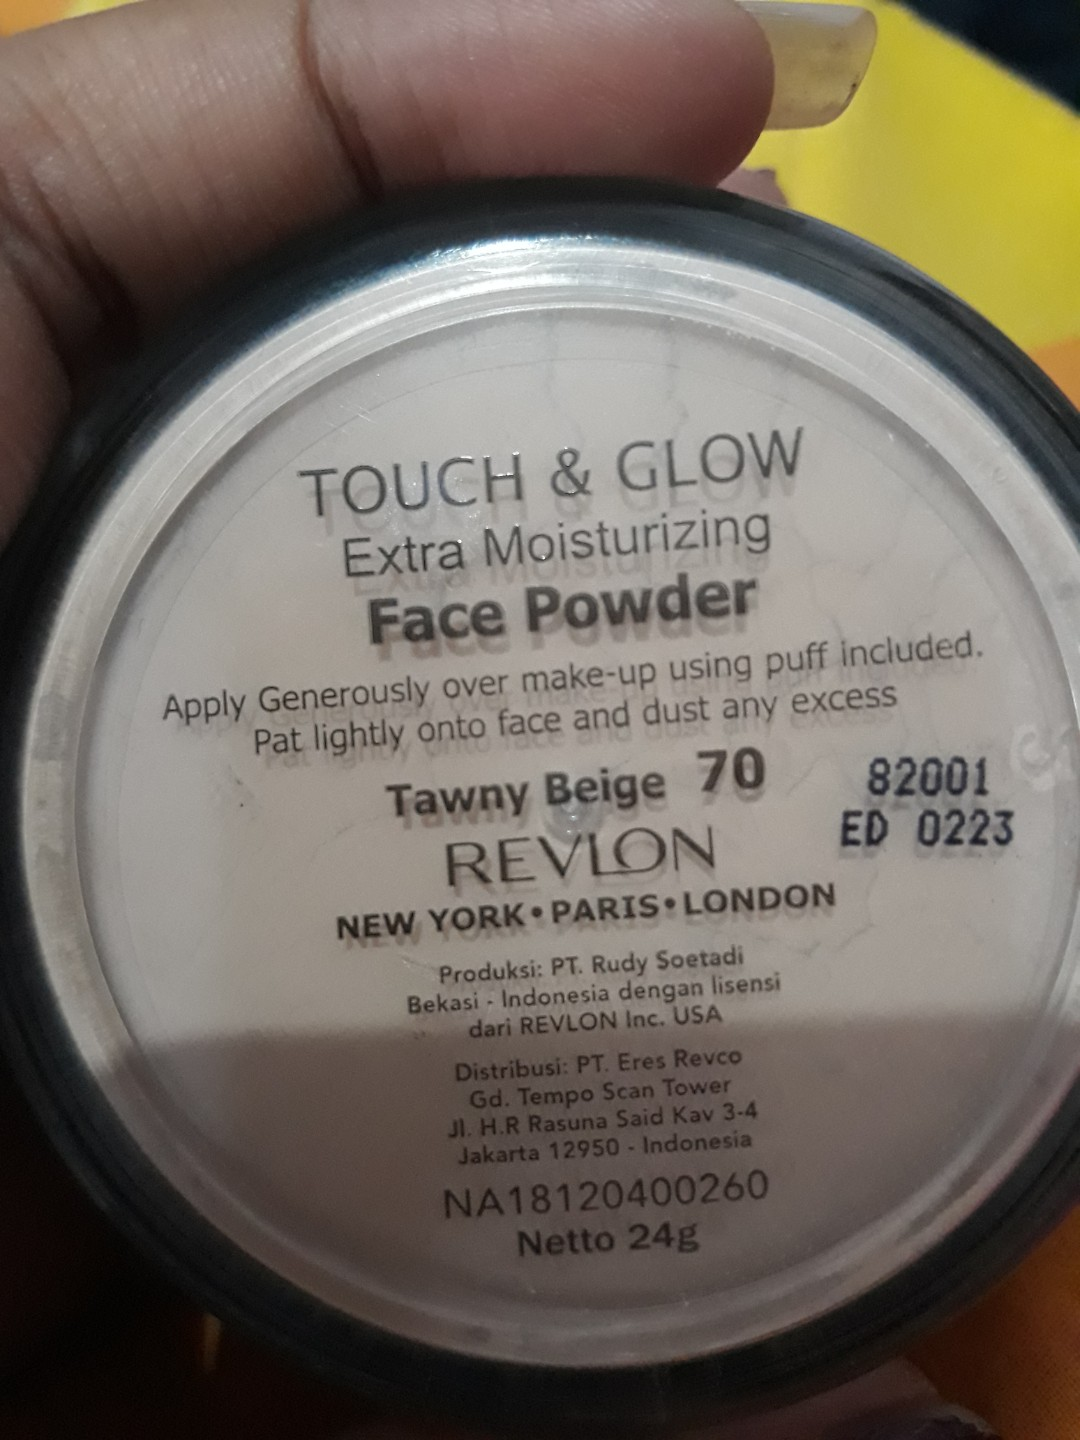 Revlon Touch Glow Extra Moisturizing Face Powder 48gram Tawny Ampamp Liquid Make Up 38ml And Beige 70